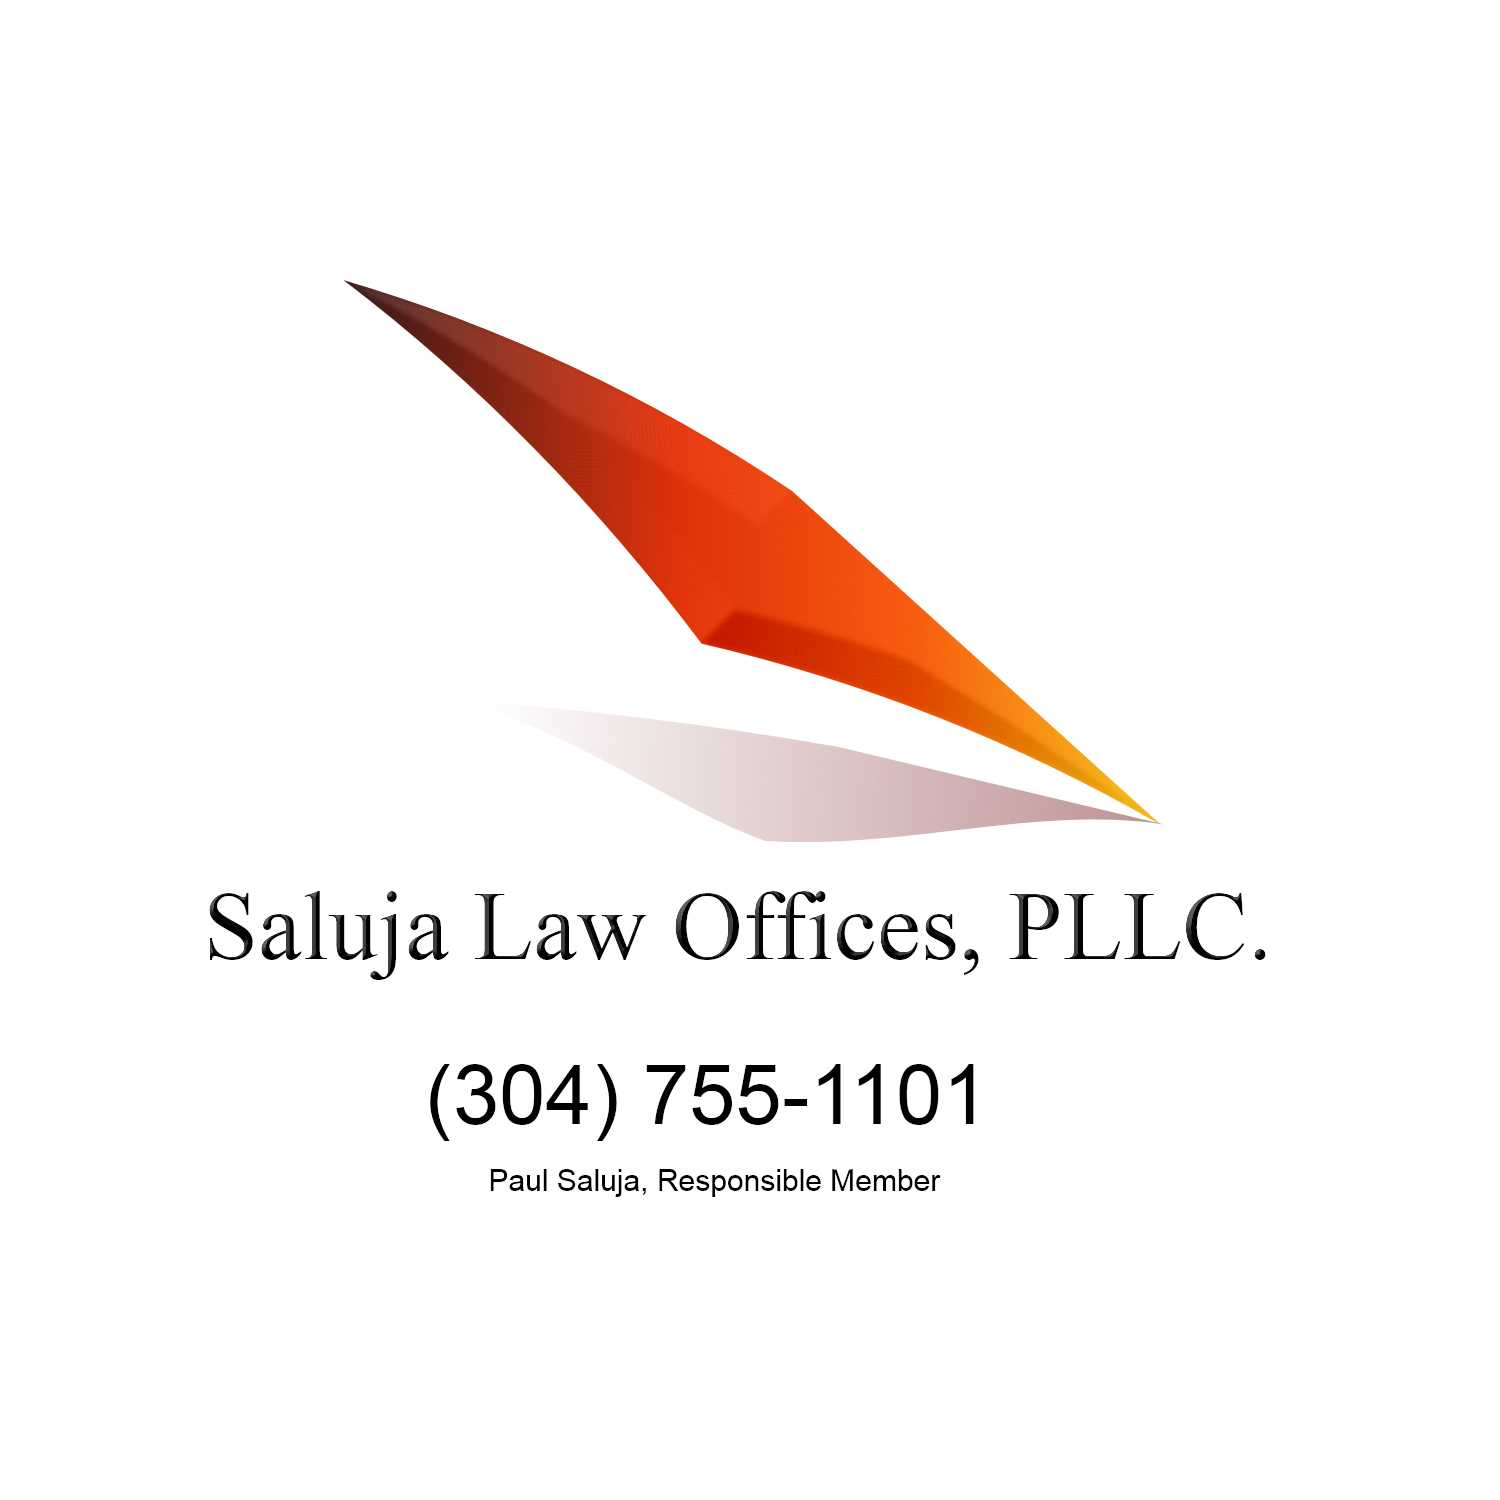 Saluja Law Offices